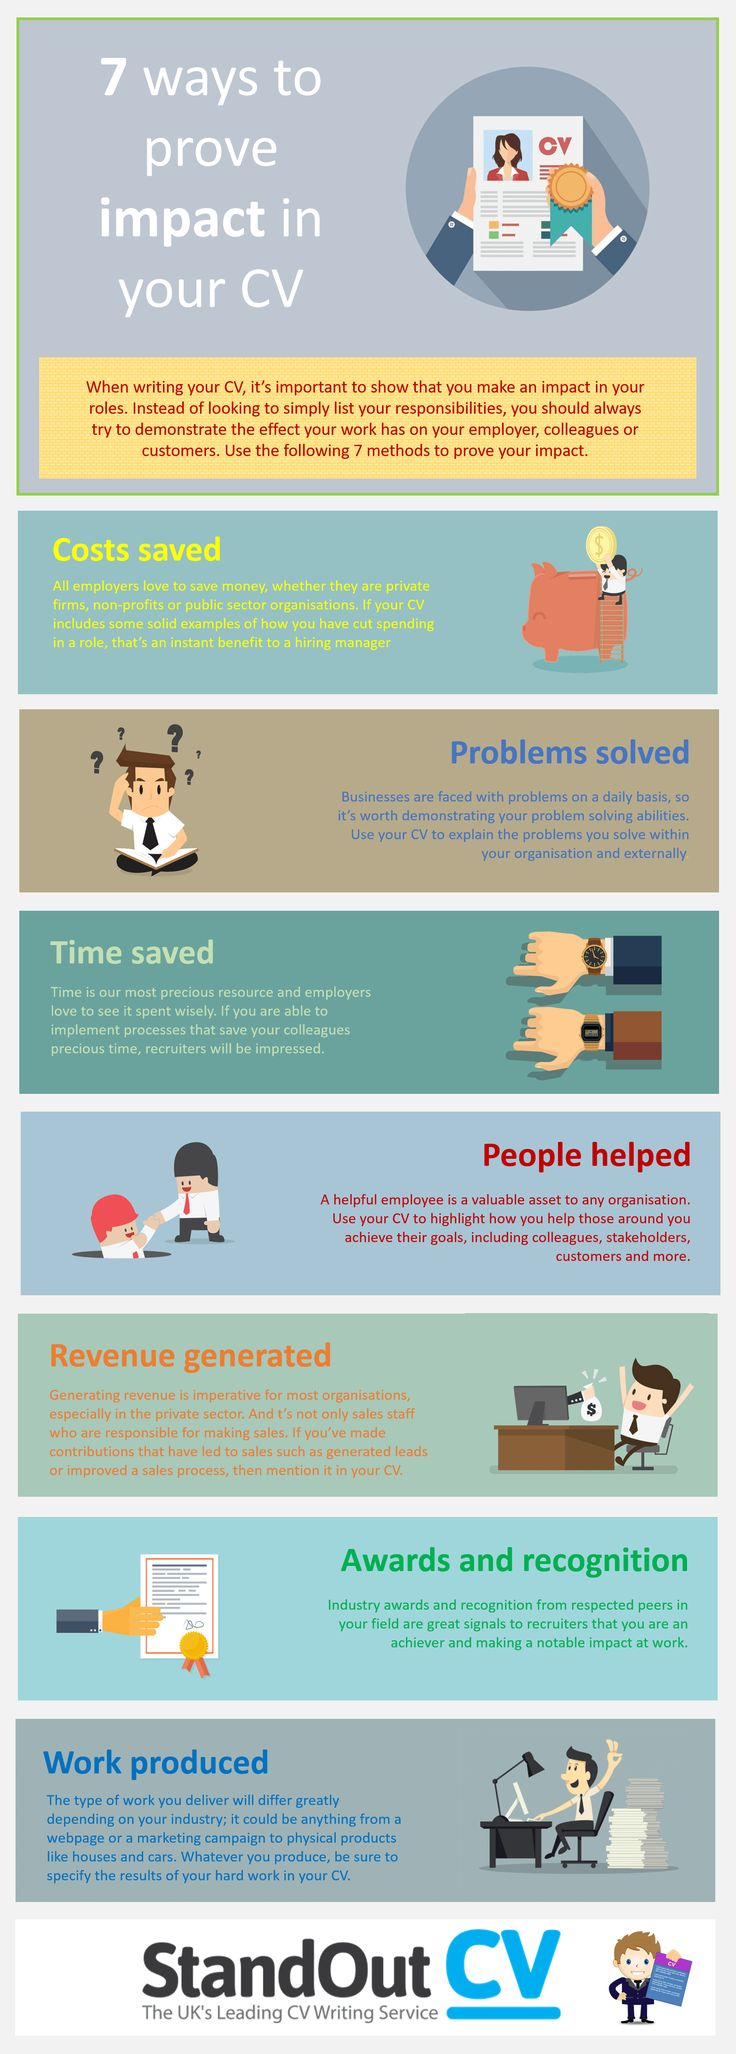 7 Ways to Prove Impact in Your CV Infographic - http://elearninginfographics.com/7-ways-prove-impact-cv-infographic/